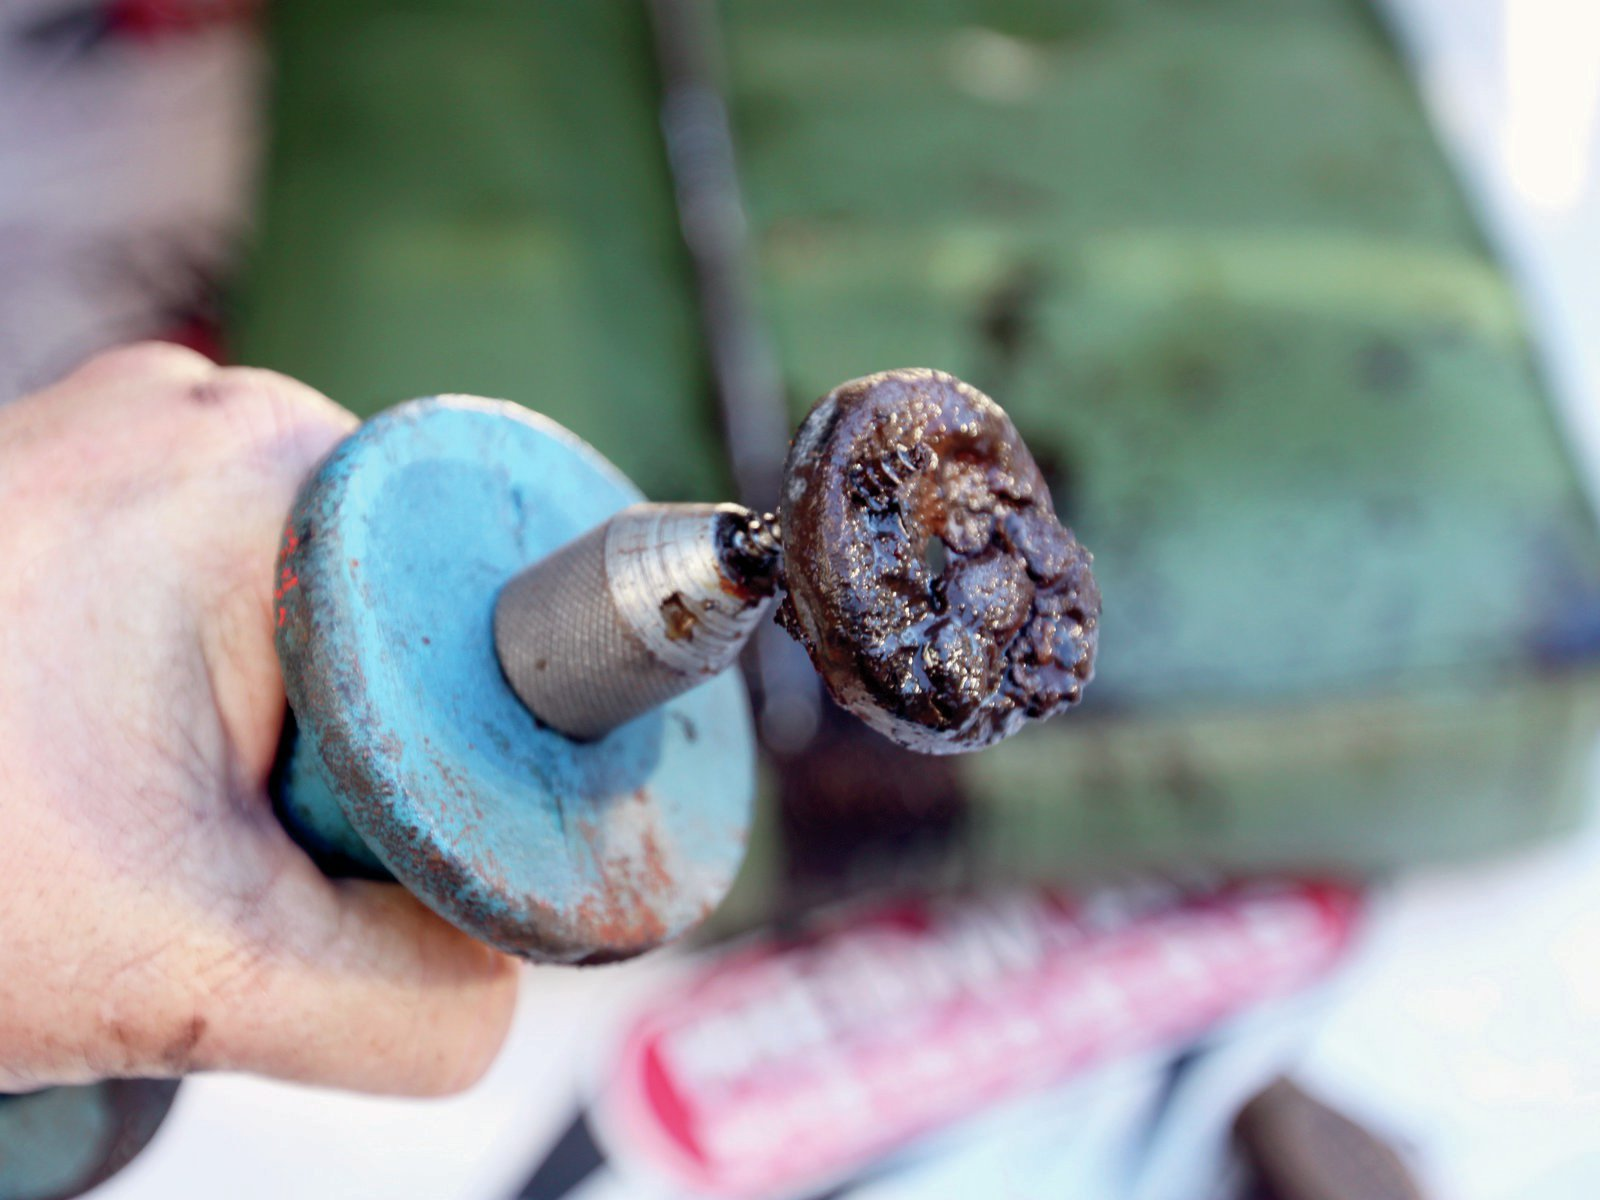 12. A slide-hammer works great to remove bad freeze plugs. Scrape and sand clean the heavy rust formations left behind.